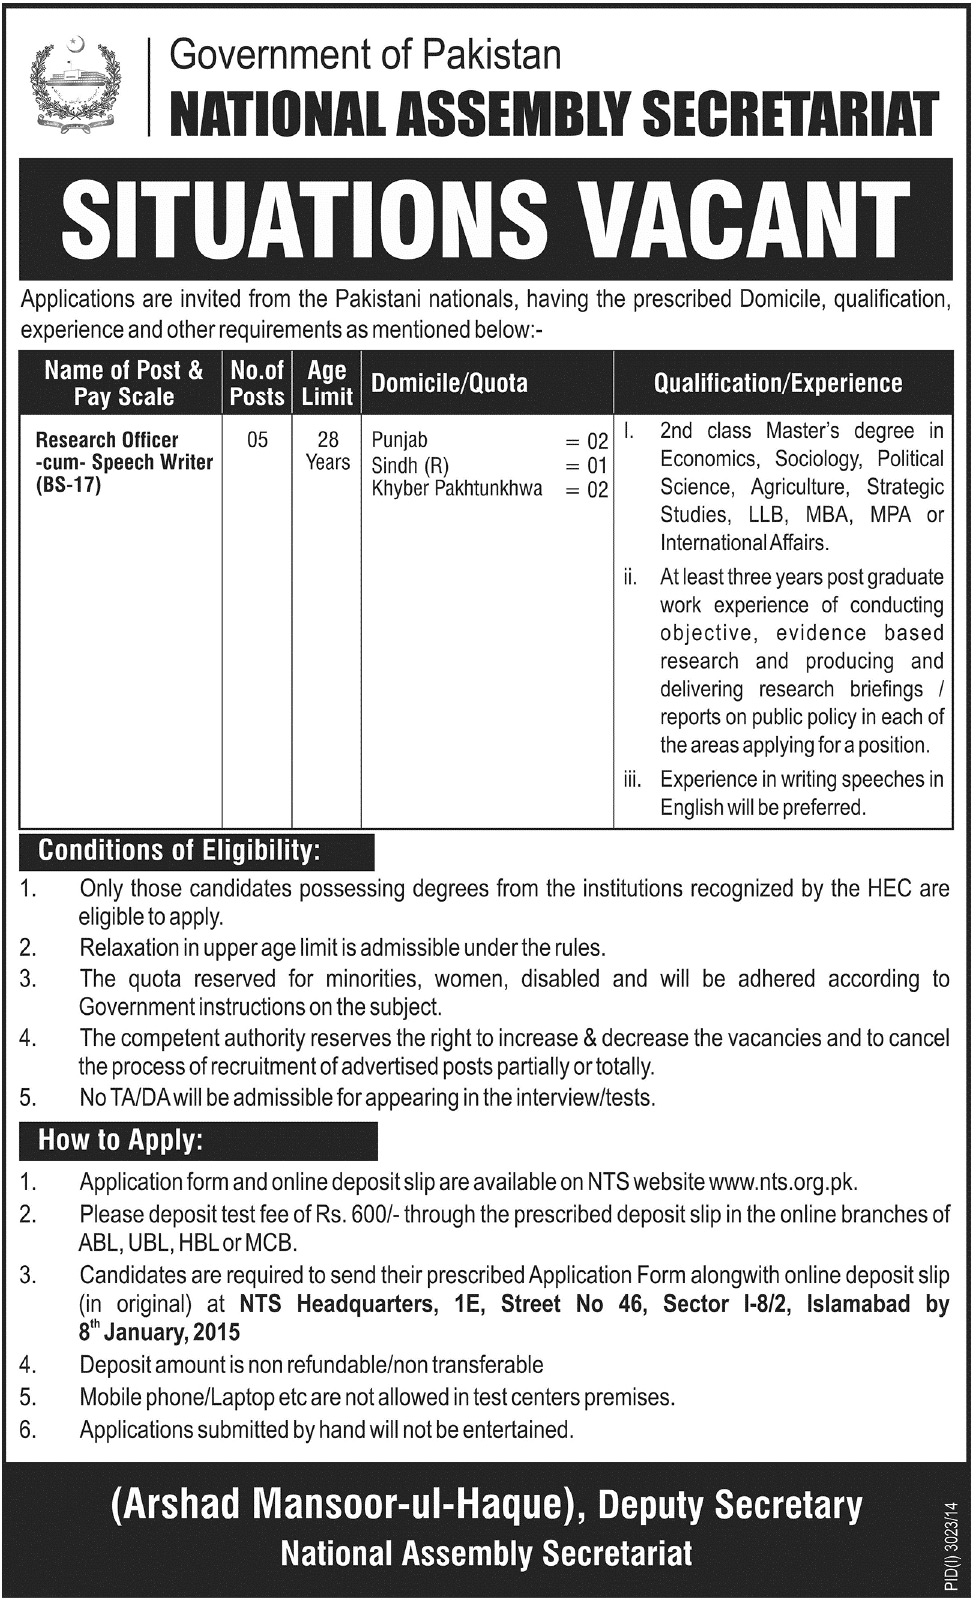 national assembly secretariat jobs 2015 nts test registration form national assembly secretariat jobs 2015 nts test registration form dates eligibility